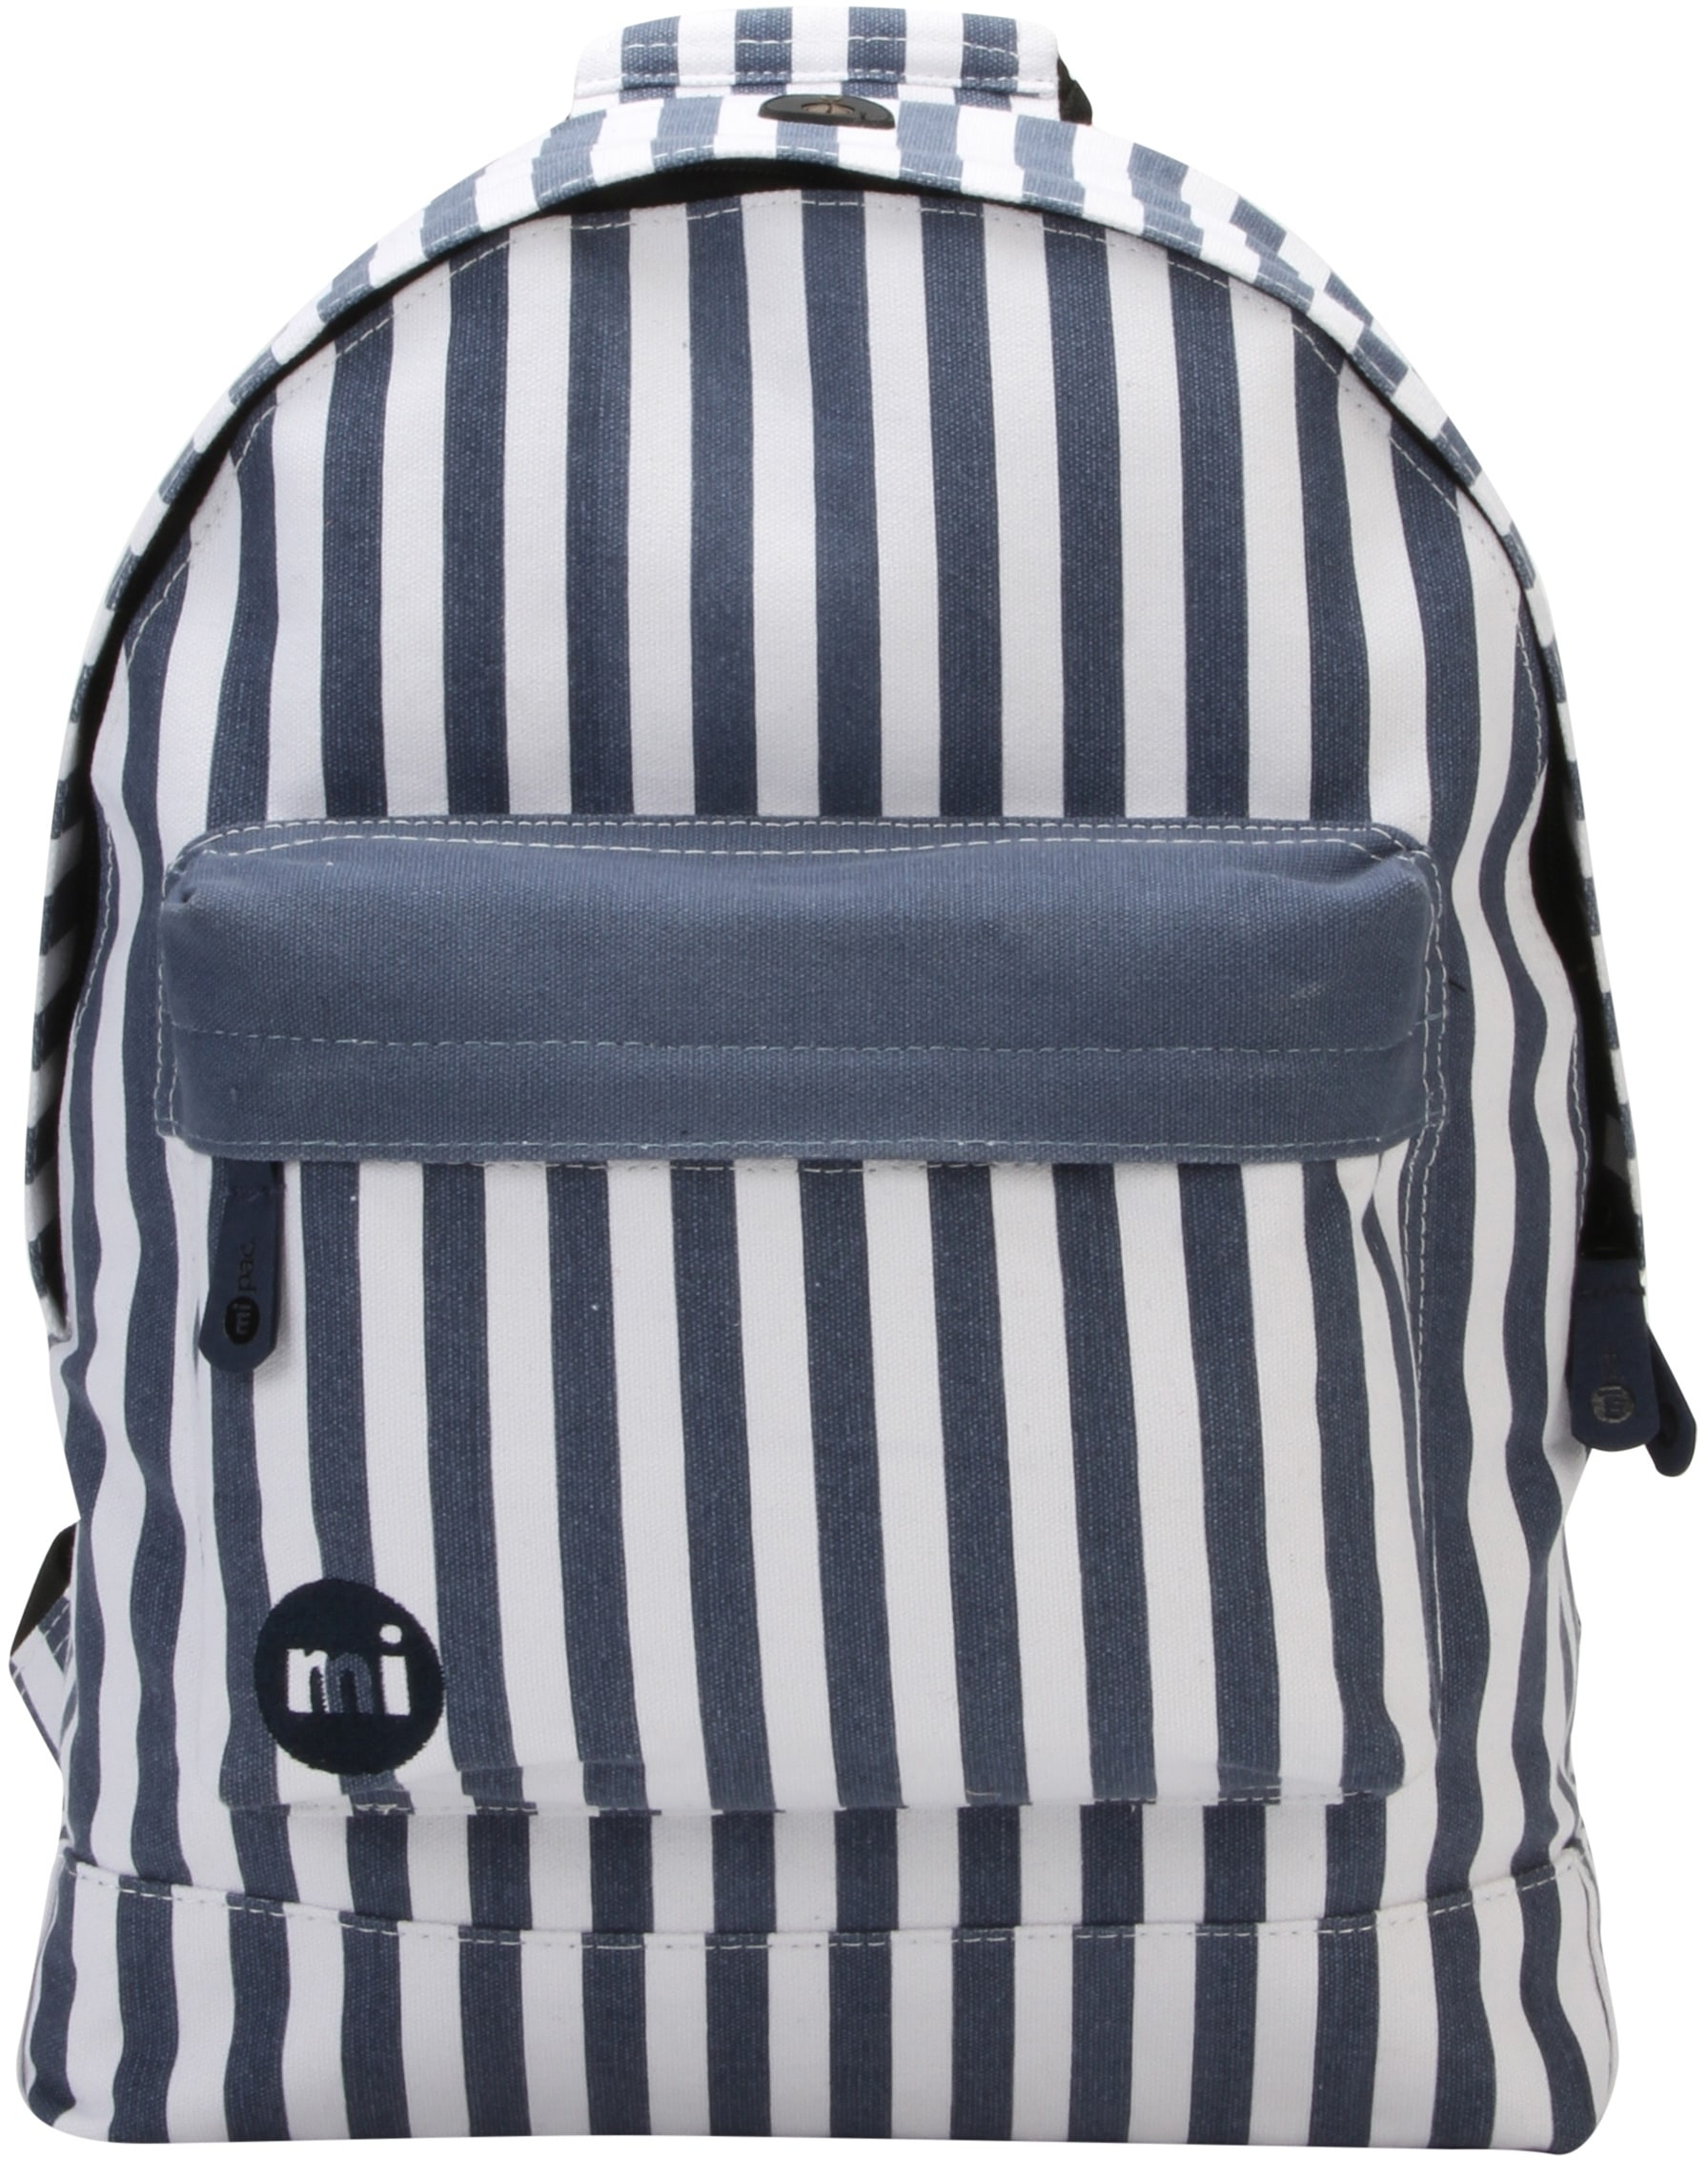 MiPac Seaside Stripe Backpack  Blue